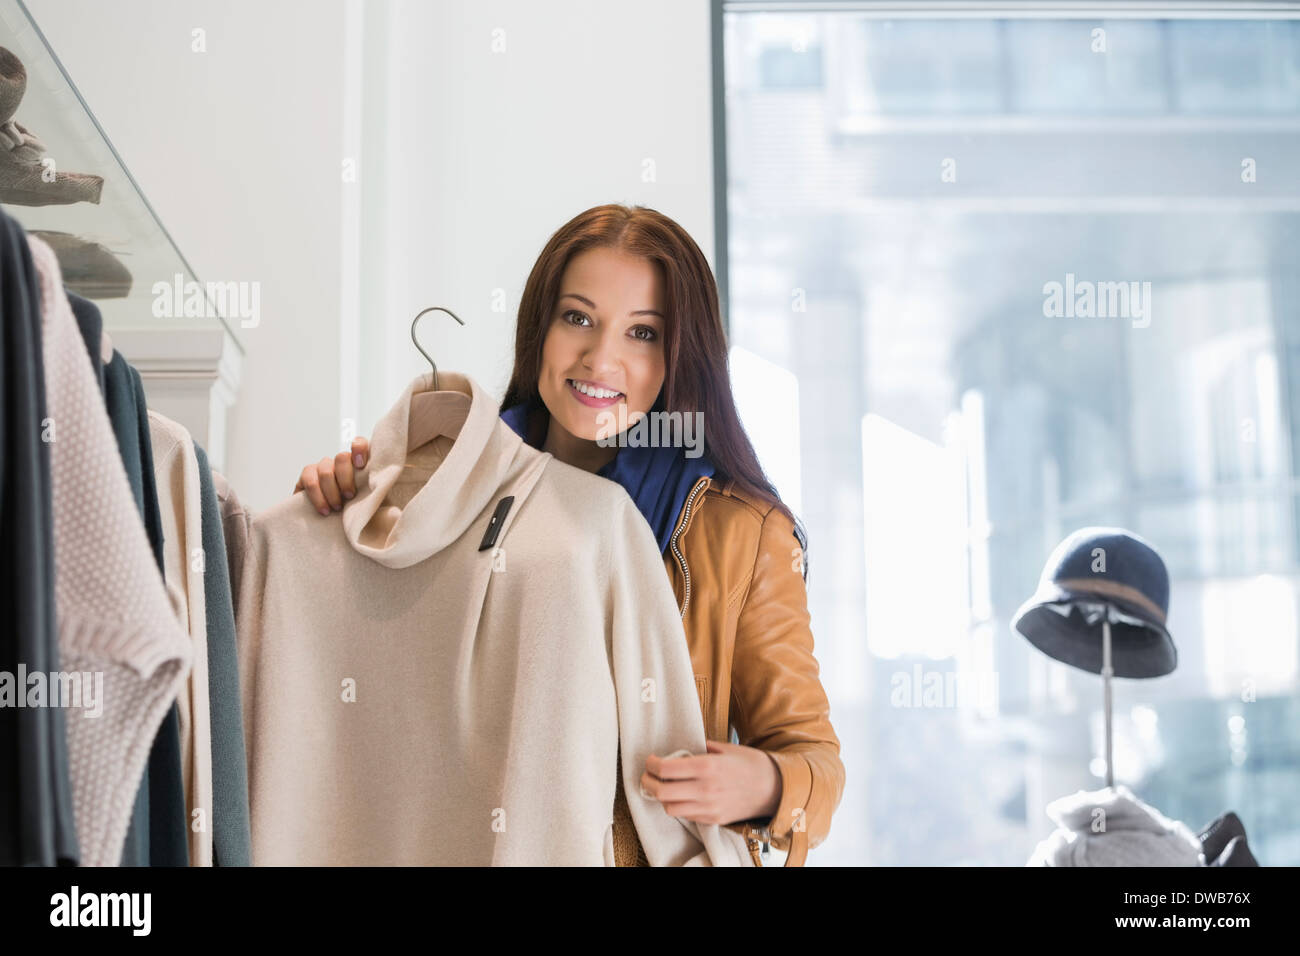 Portrait of young woman choosing sweater in store Photo Stock